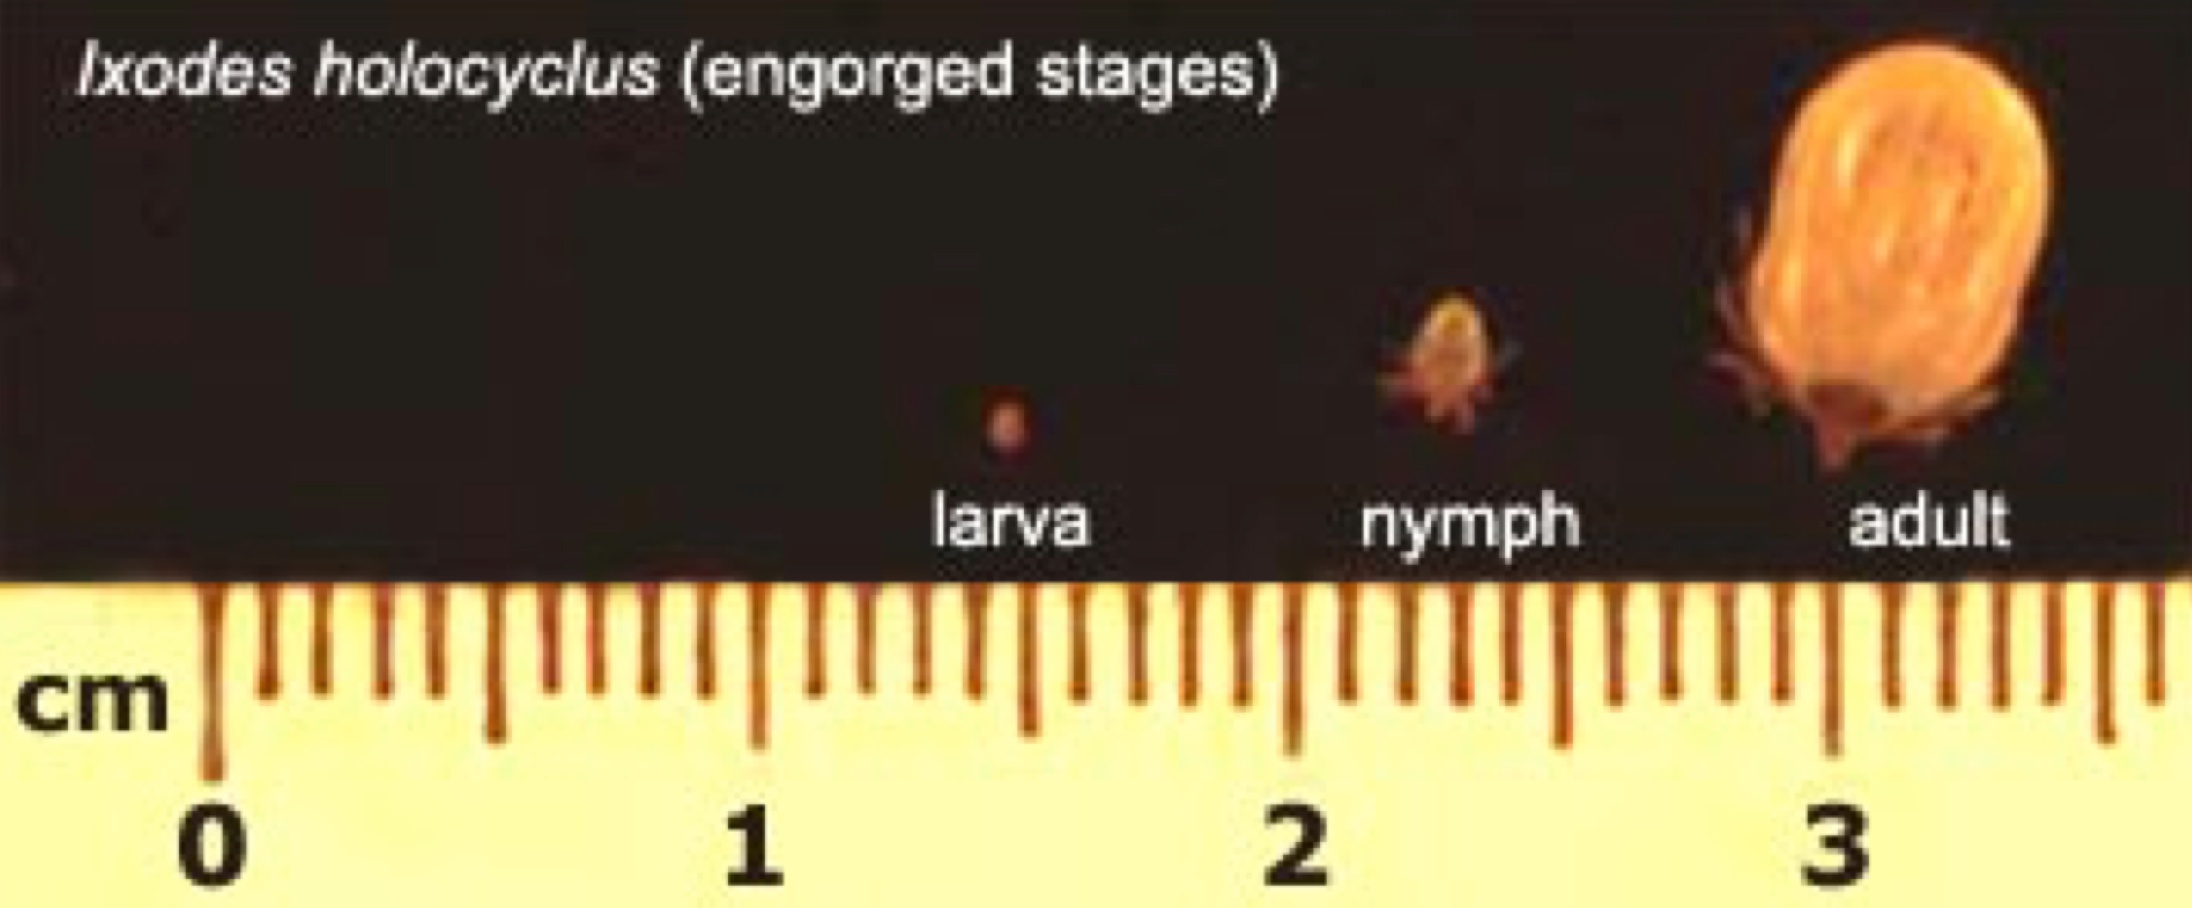 Engorged ticks of different stages – larval, nymph and adult